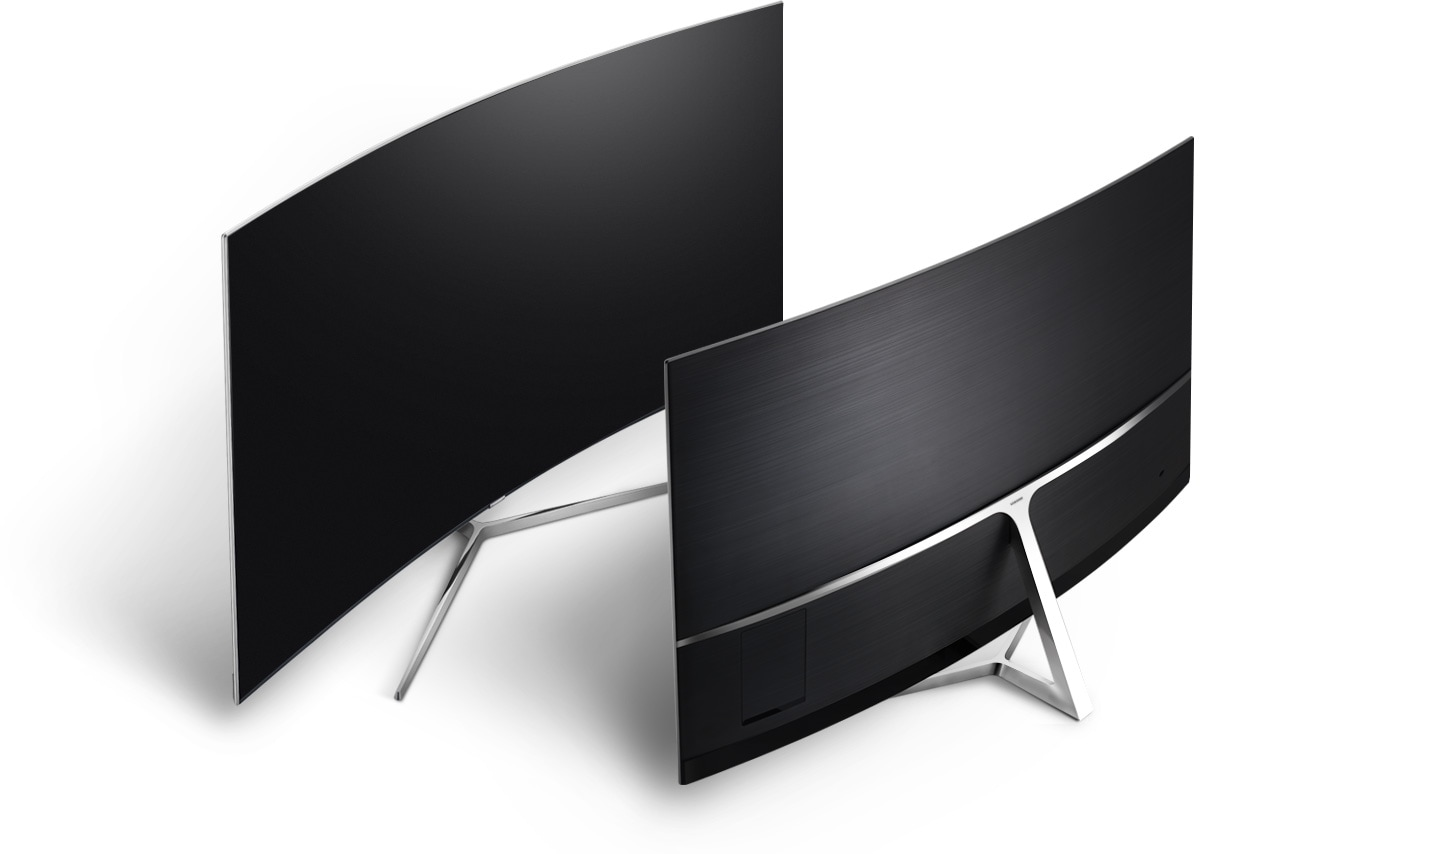 Two curved Samsung TVs are facing each other and one shows streamlined clean back design.